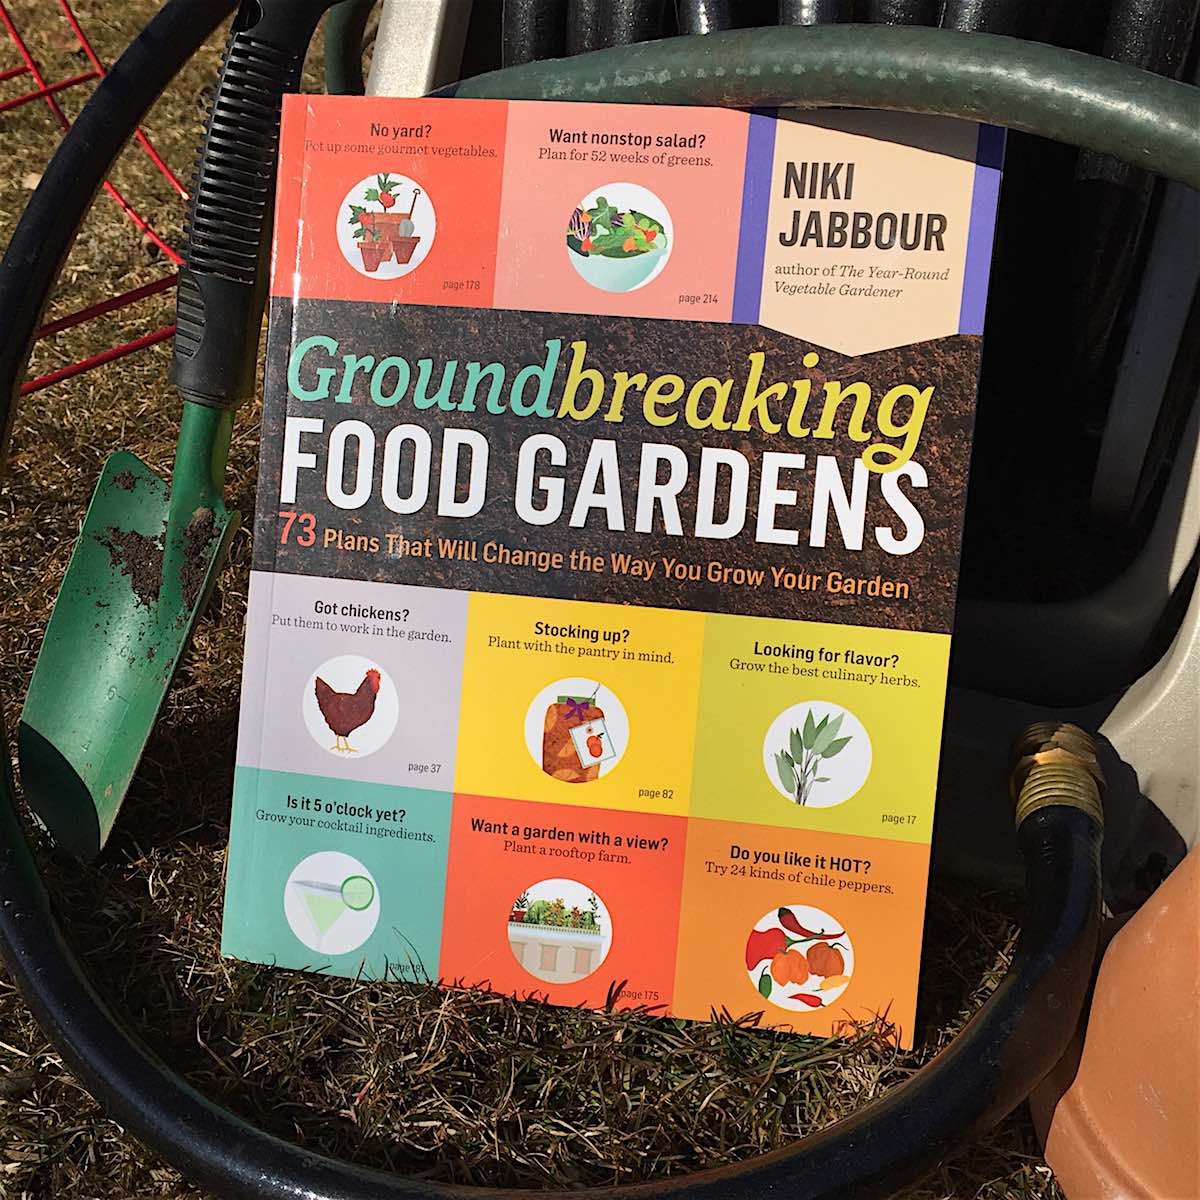 73 Plans That Will Change the Way You Grow Your Garden